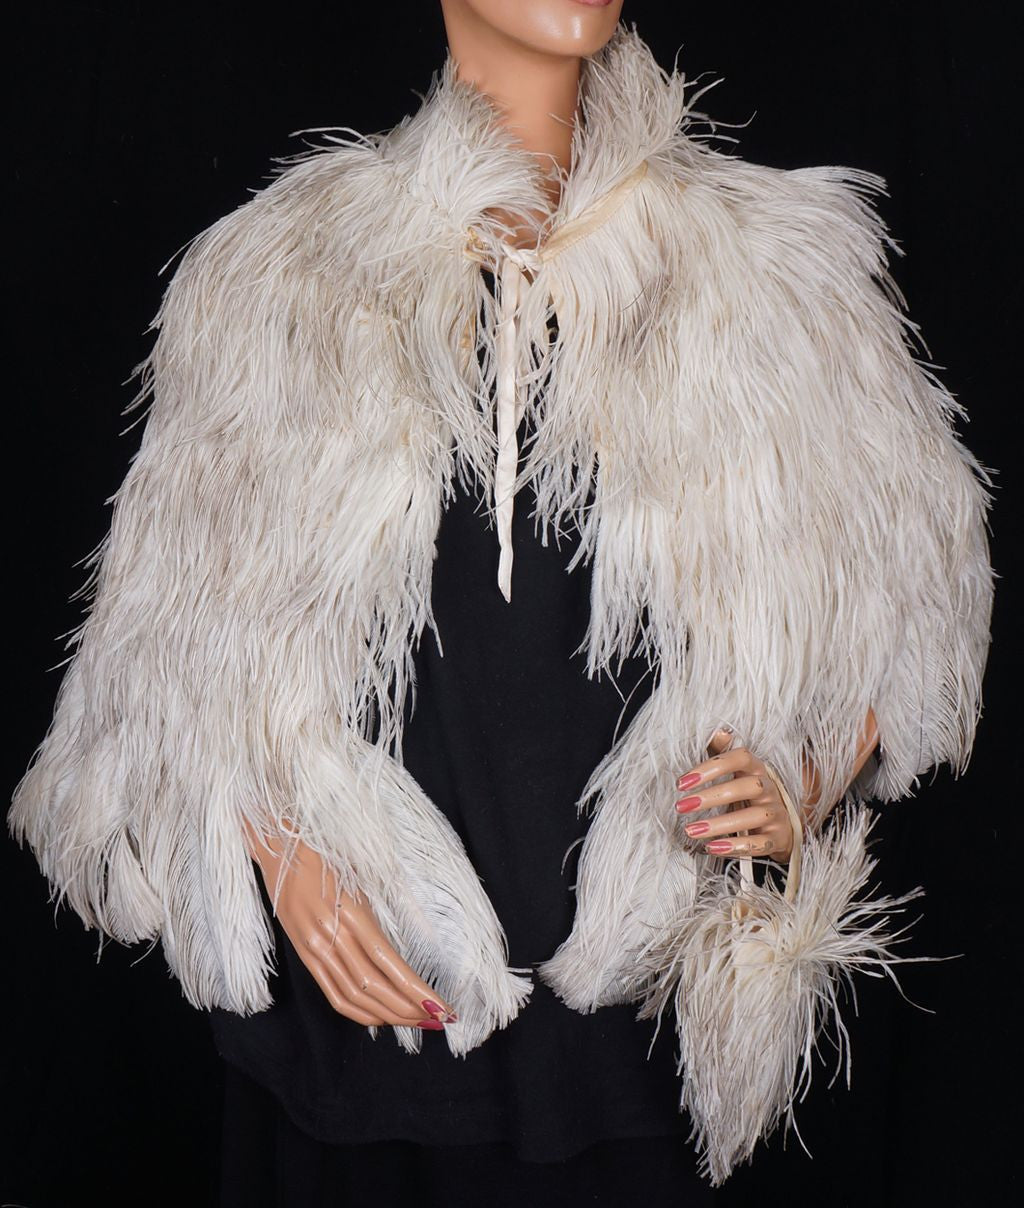 Vintage 1930s White Ostrich Feather Cape 30s Evening